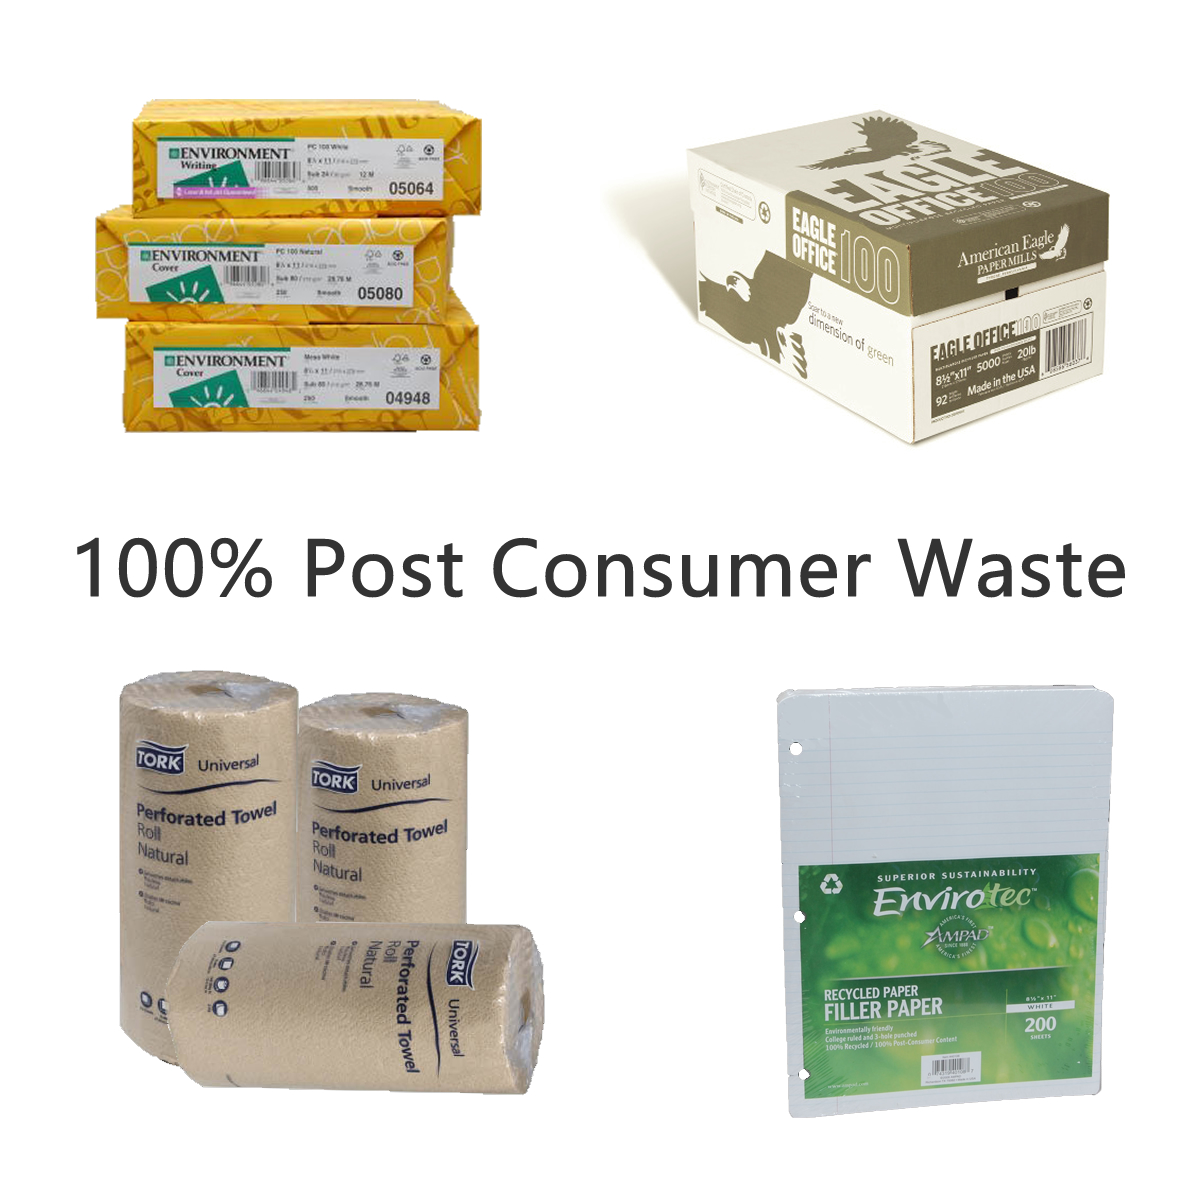 100% Post Consumer Waste (PCW)